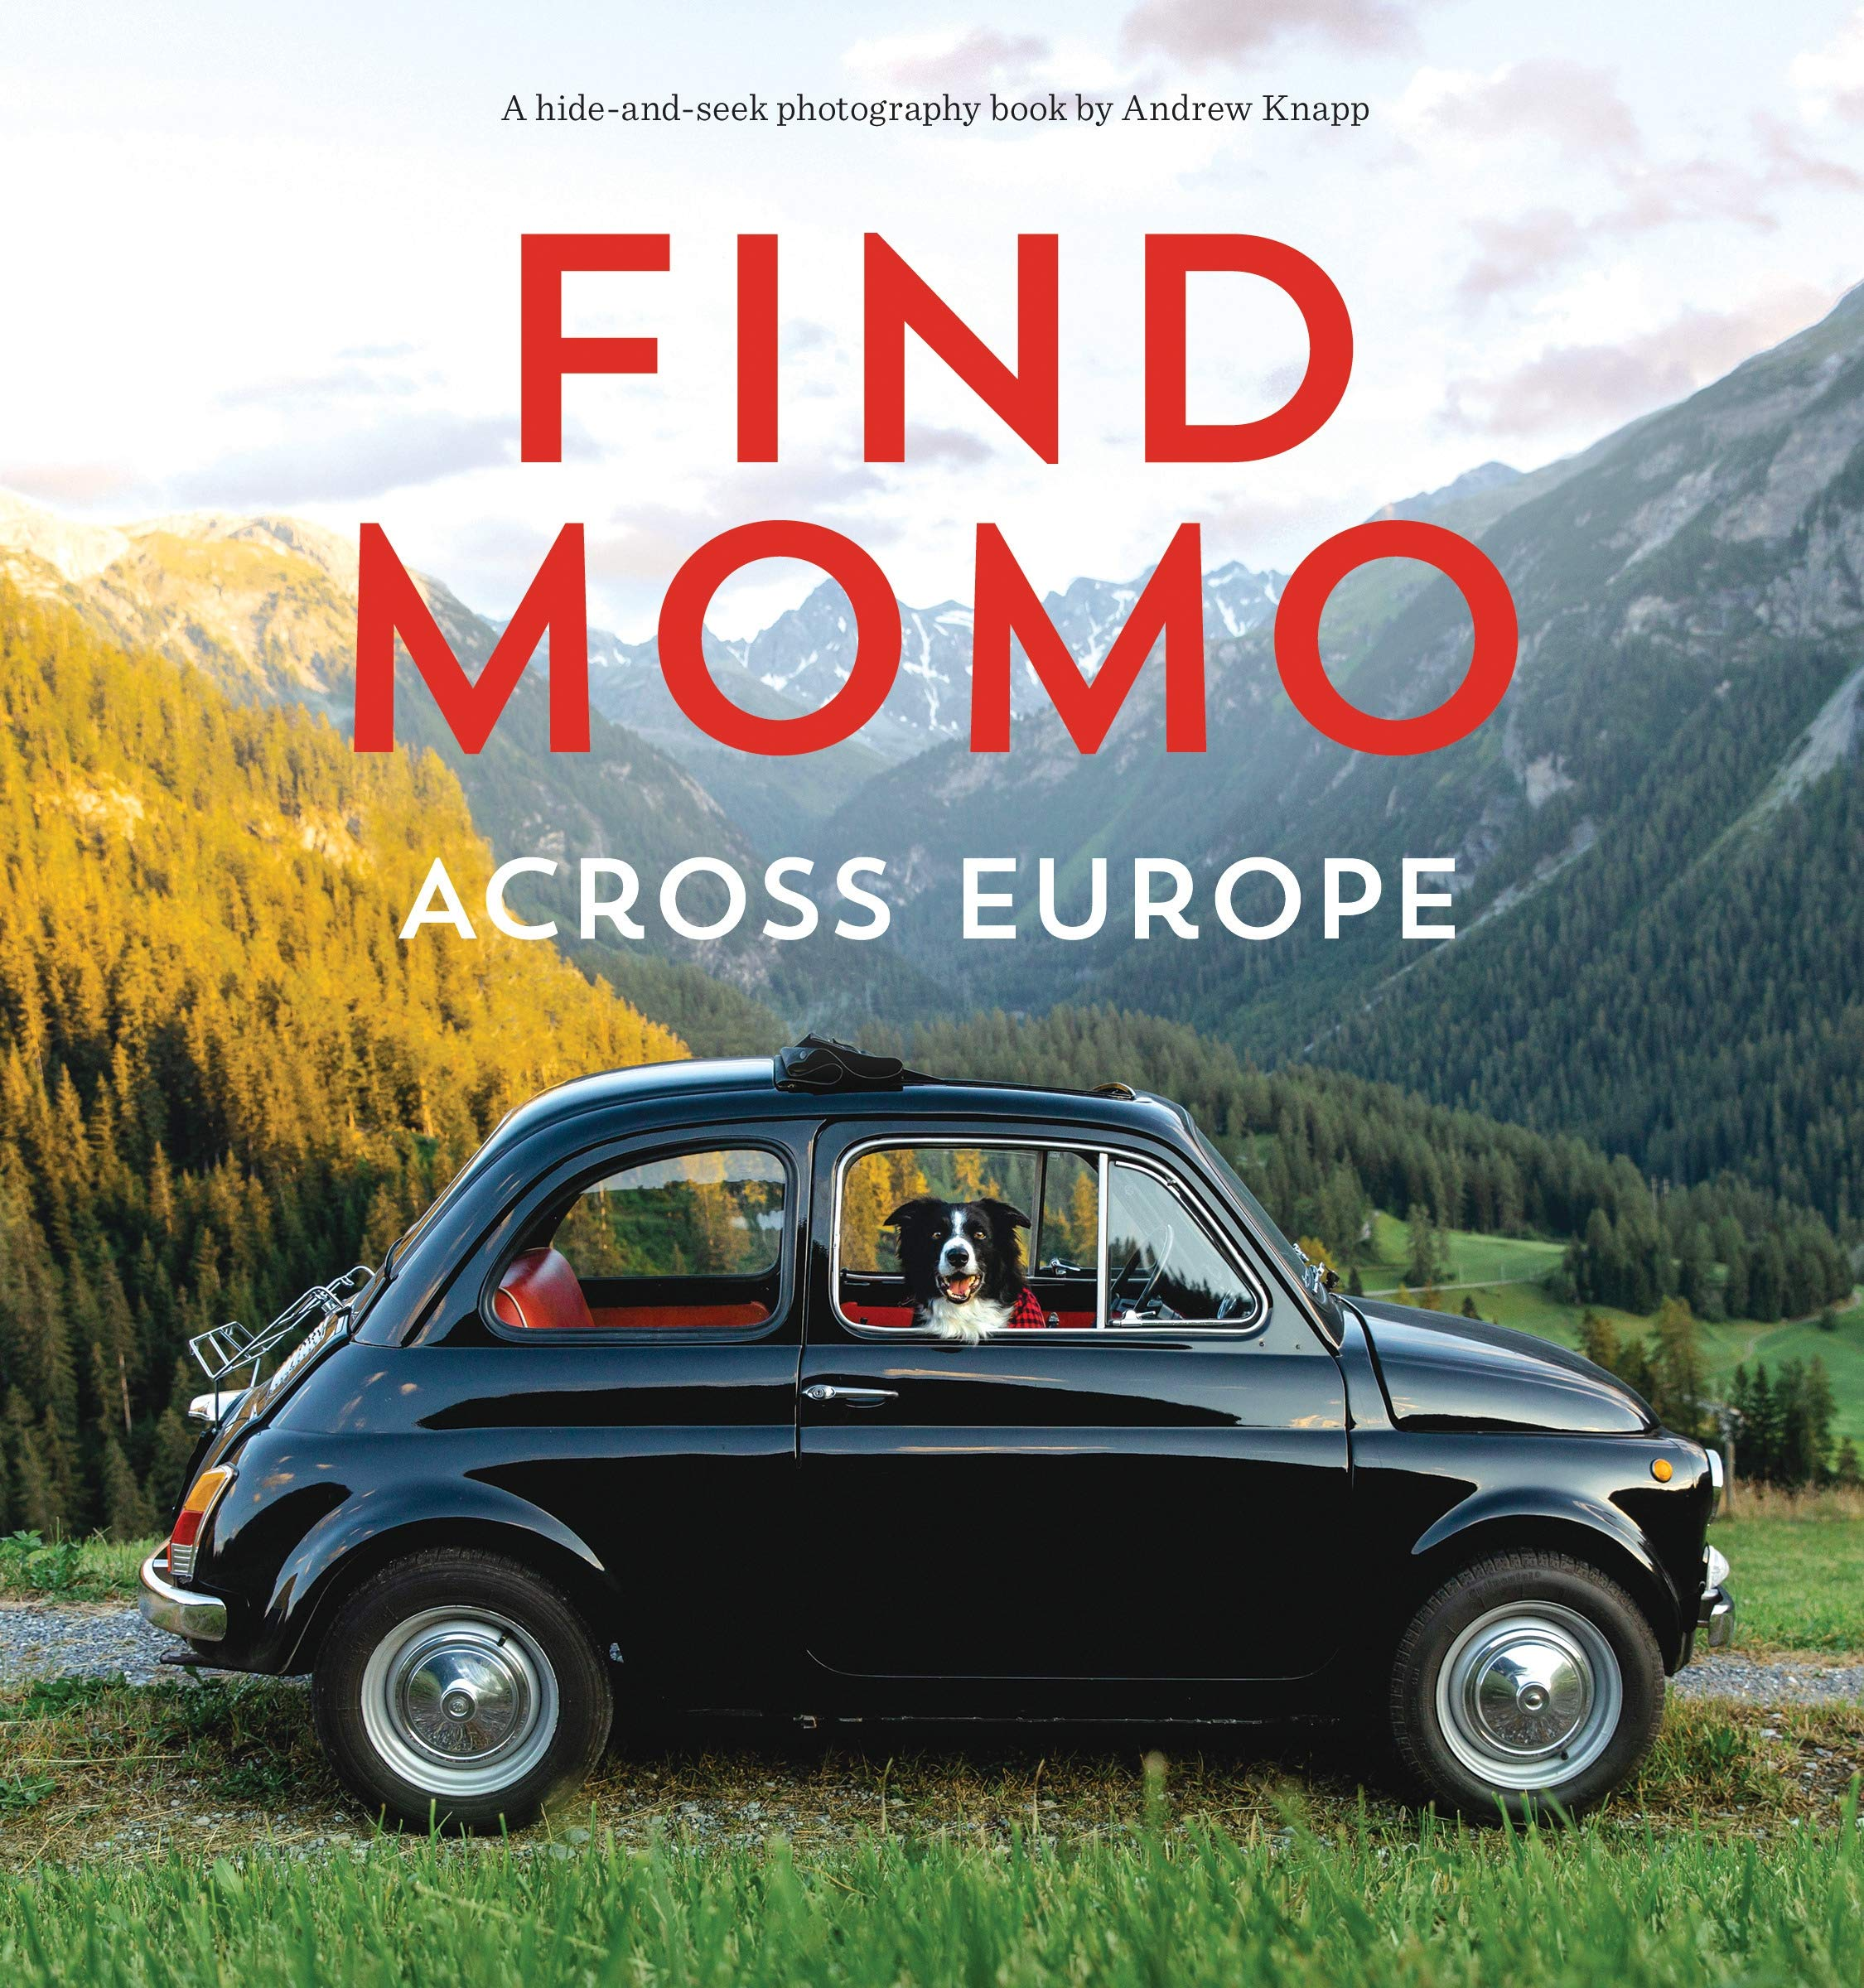 Find Momo across Europe: Another Hide and Seek Photography Book